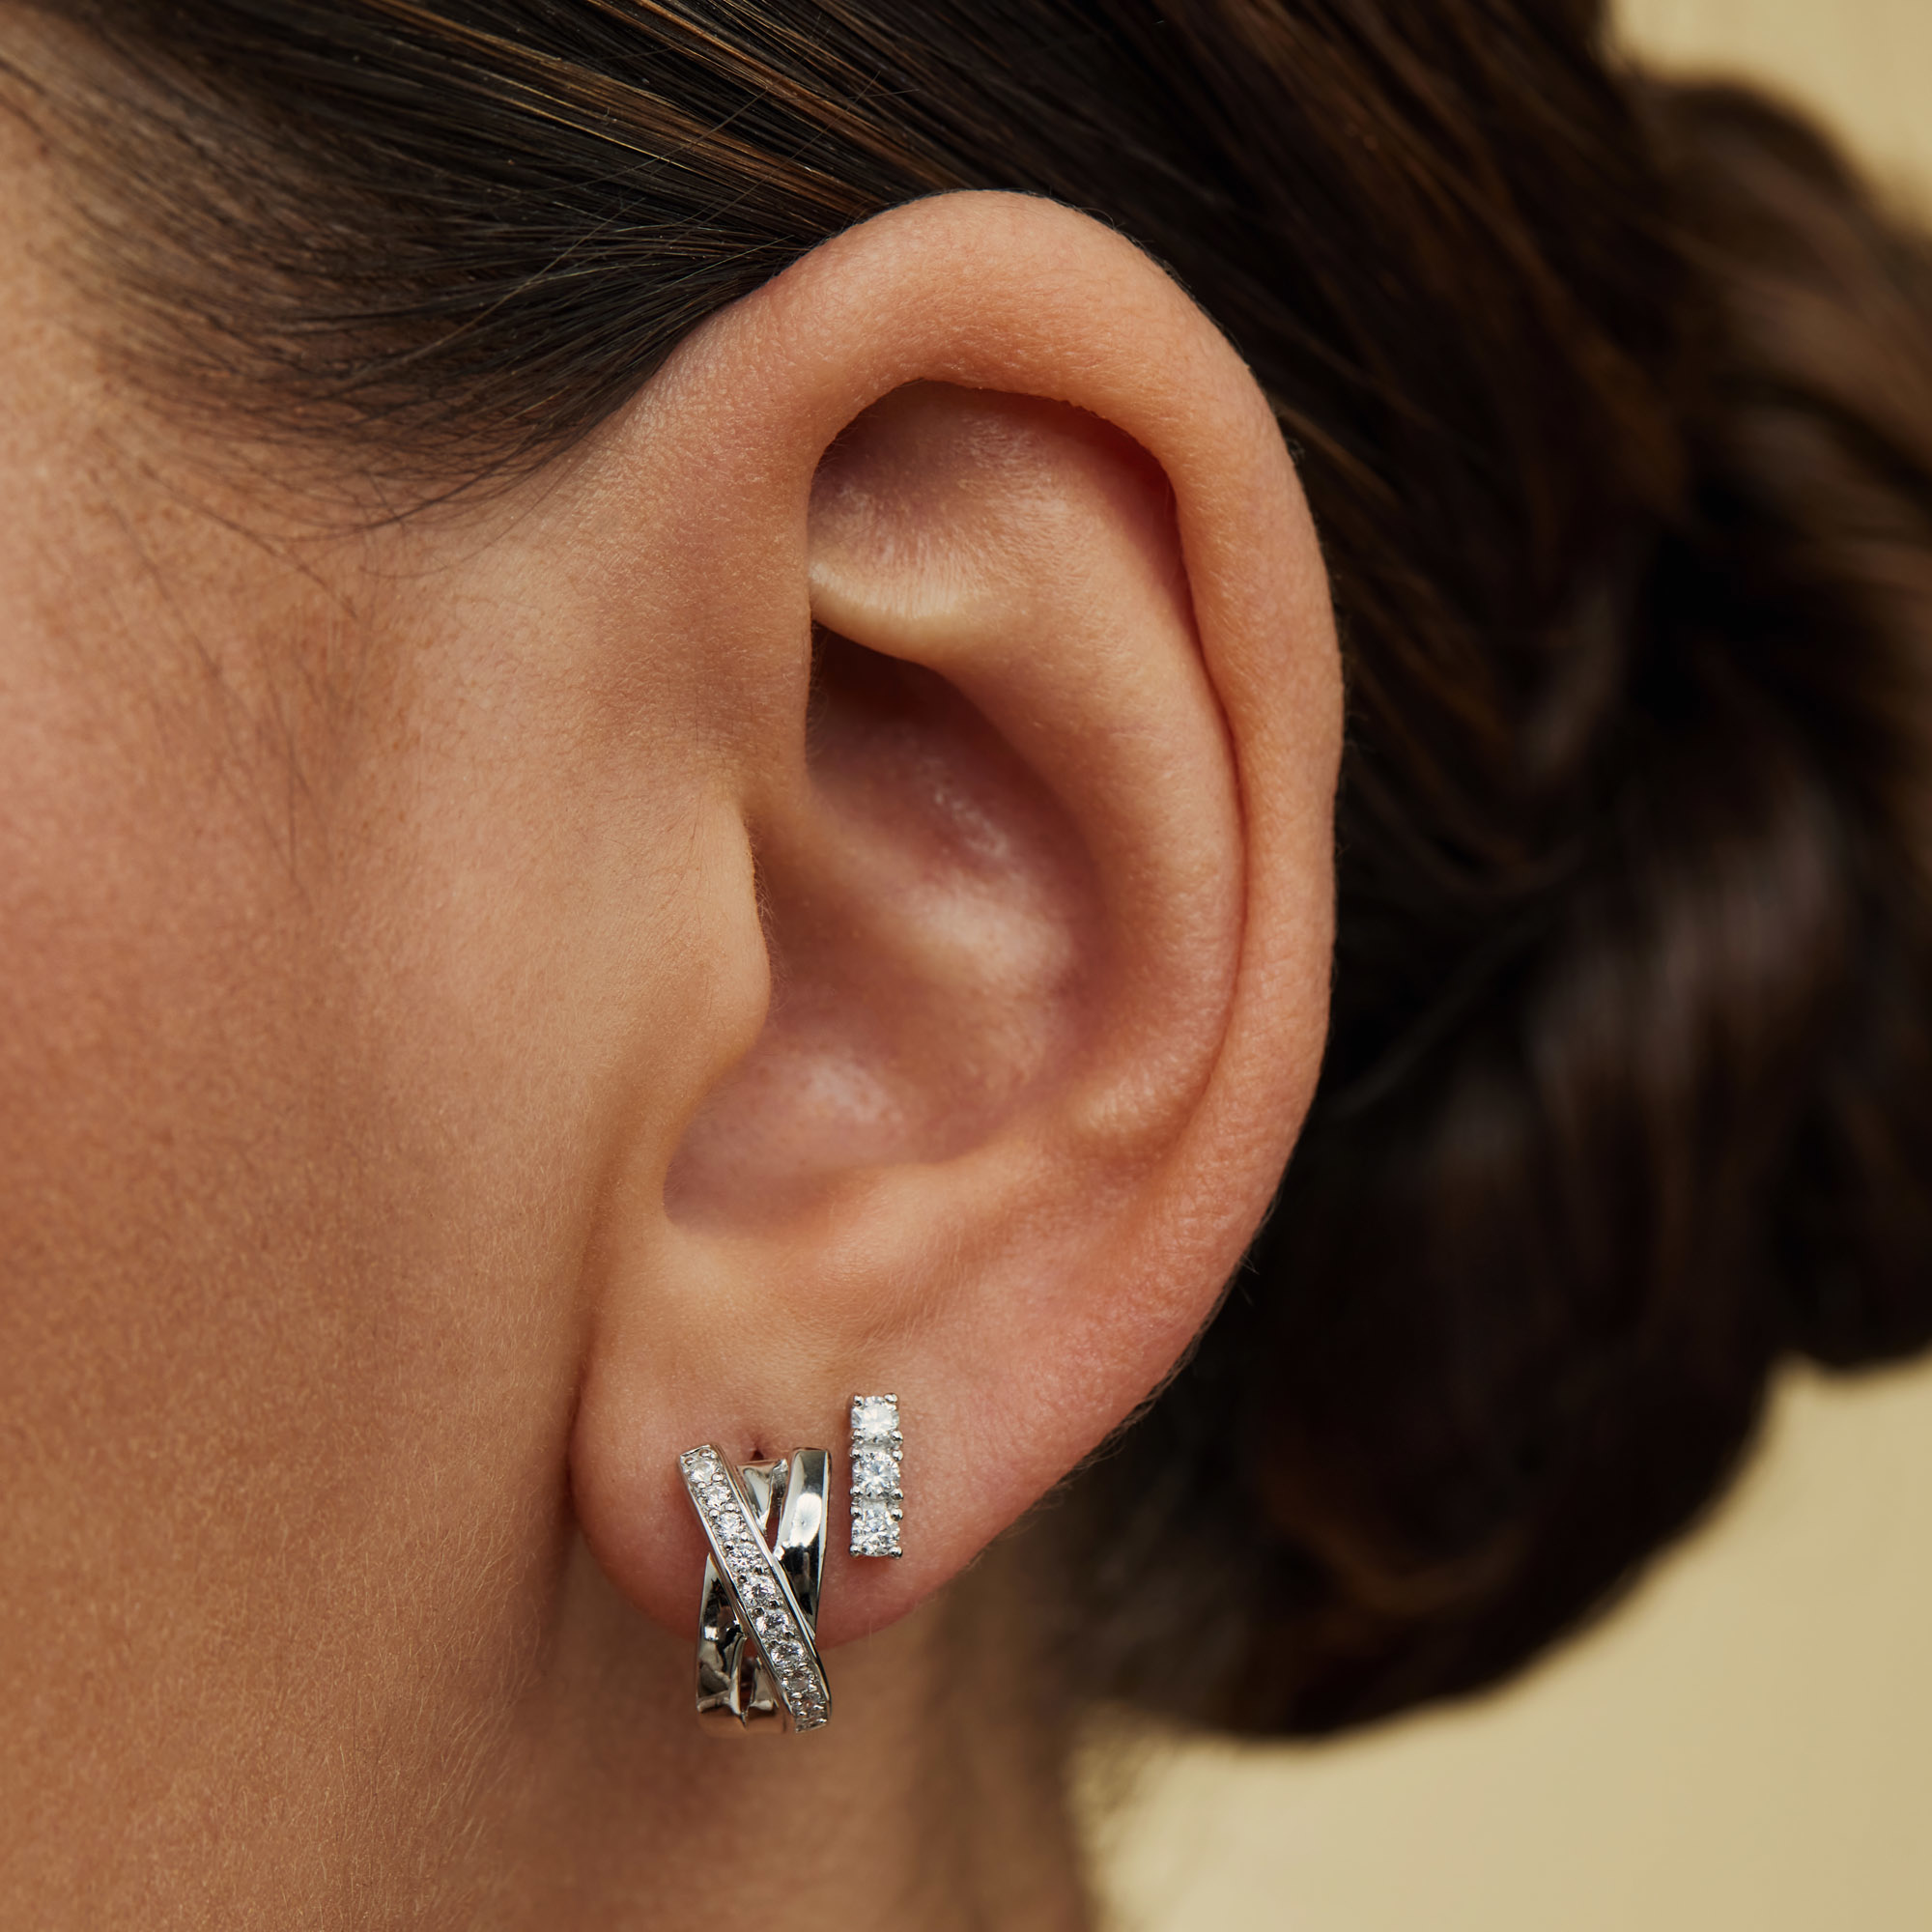 Parte di Me Ponte Vecchio Vasariano 925 sterling silver hoop earrings with zirconia